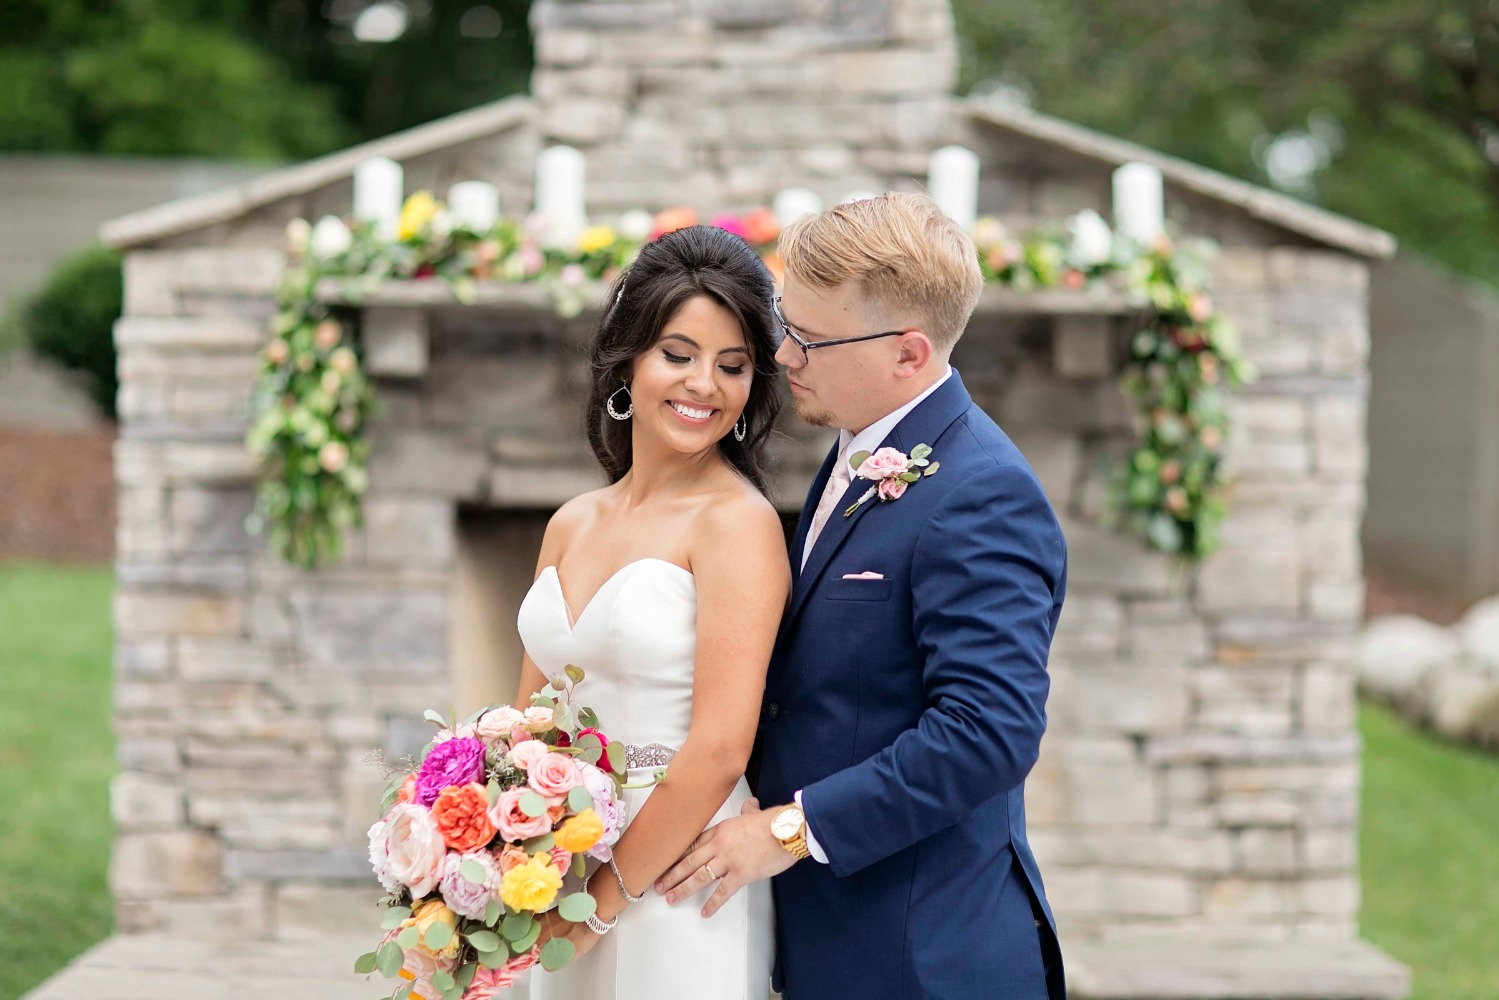 wedding couple with outdoor fireplace ceremony backdrop